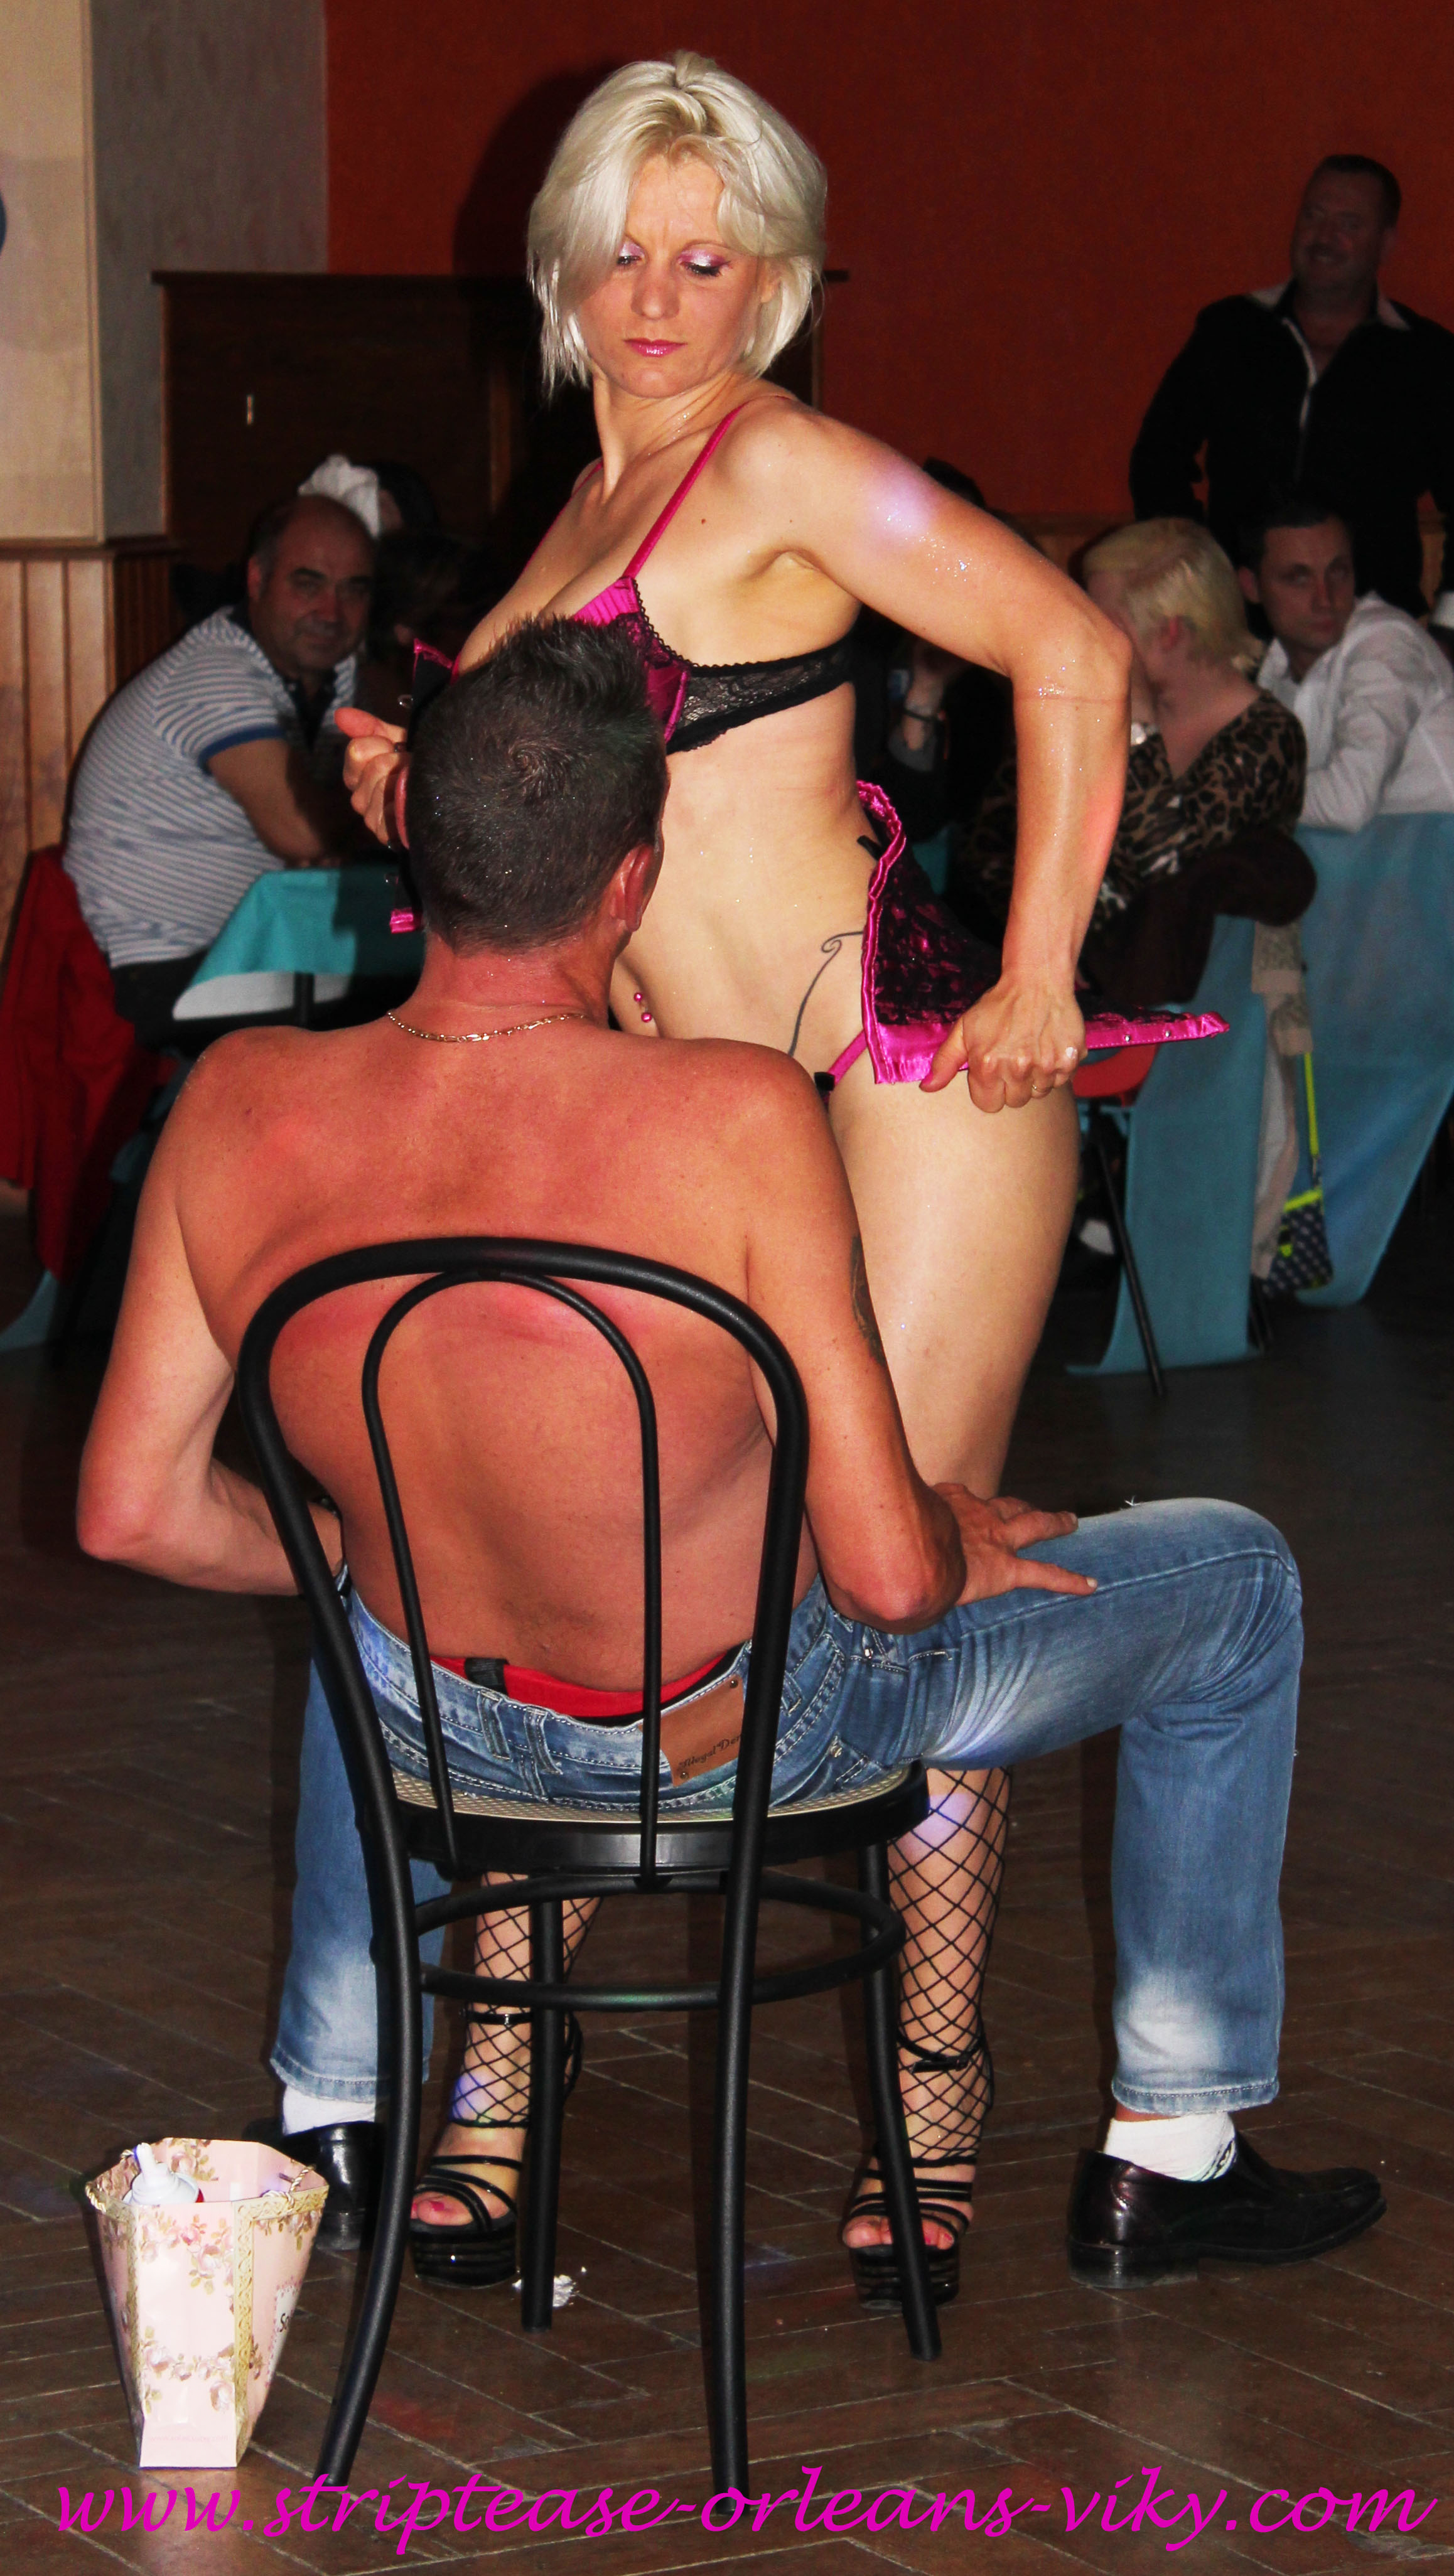 Strip-tease Pithiviers Loiret 45